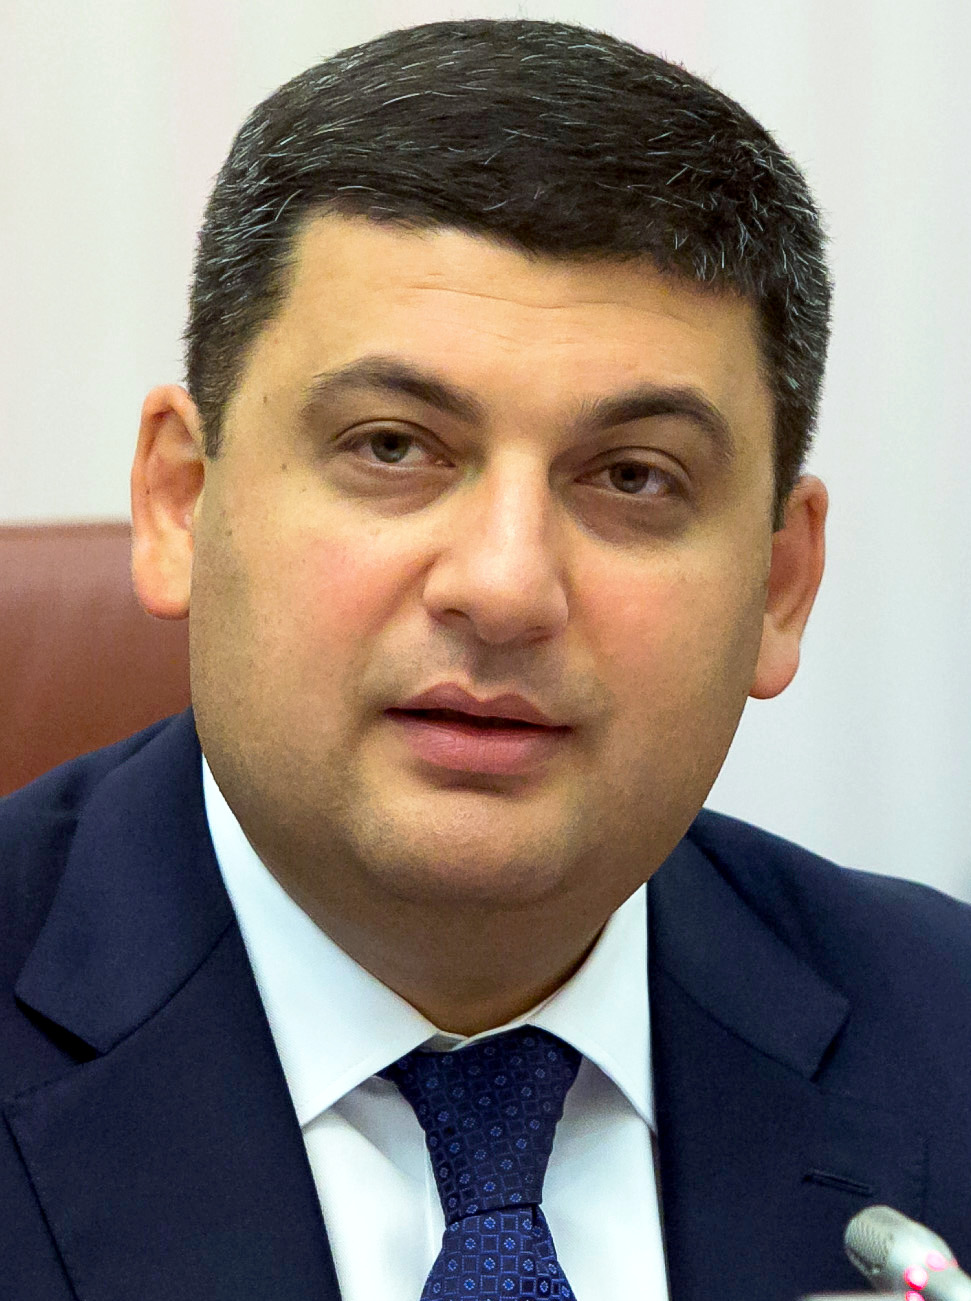 Ukrainian Prime Minister Volodymyr Groysman (pictured) was disinvited from Israel following Ukraine's vote in favor of the U.N. resolution against Israeli settlements. Credit: US Embassy Ukraine.